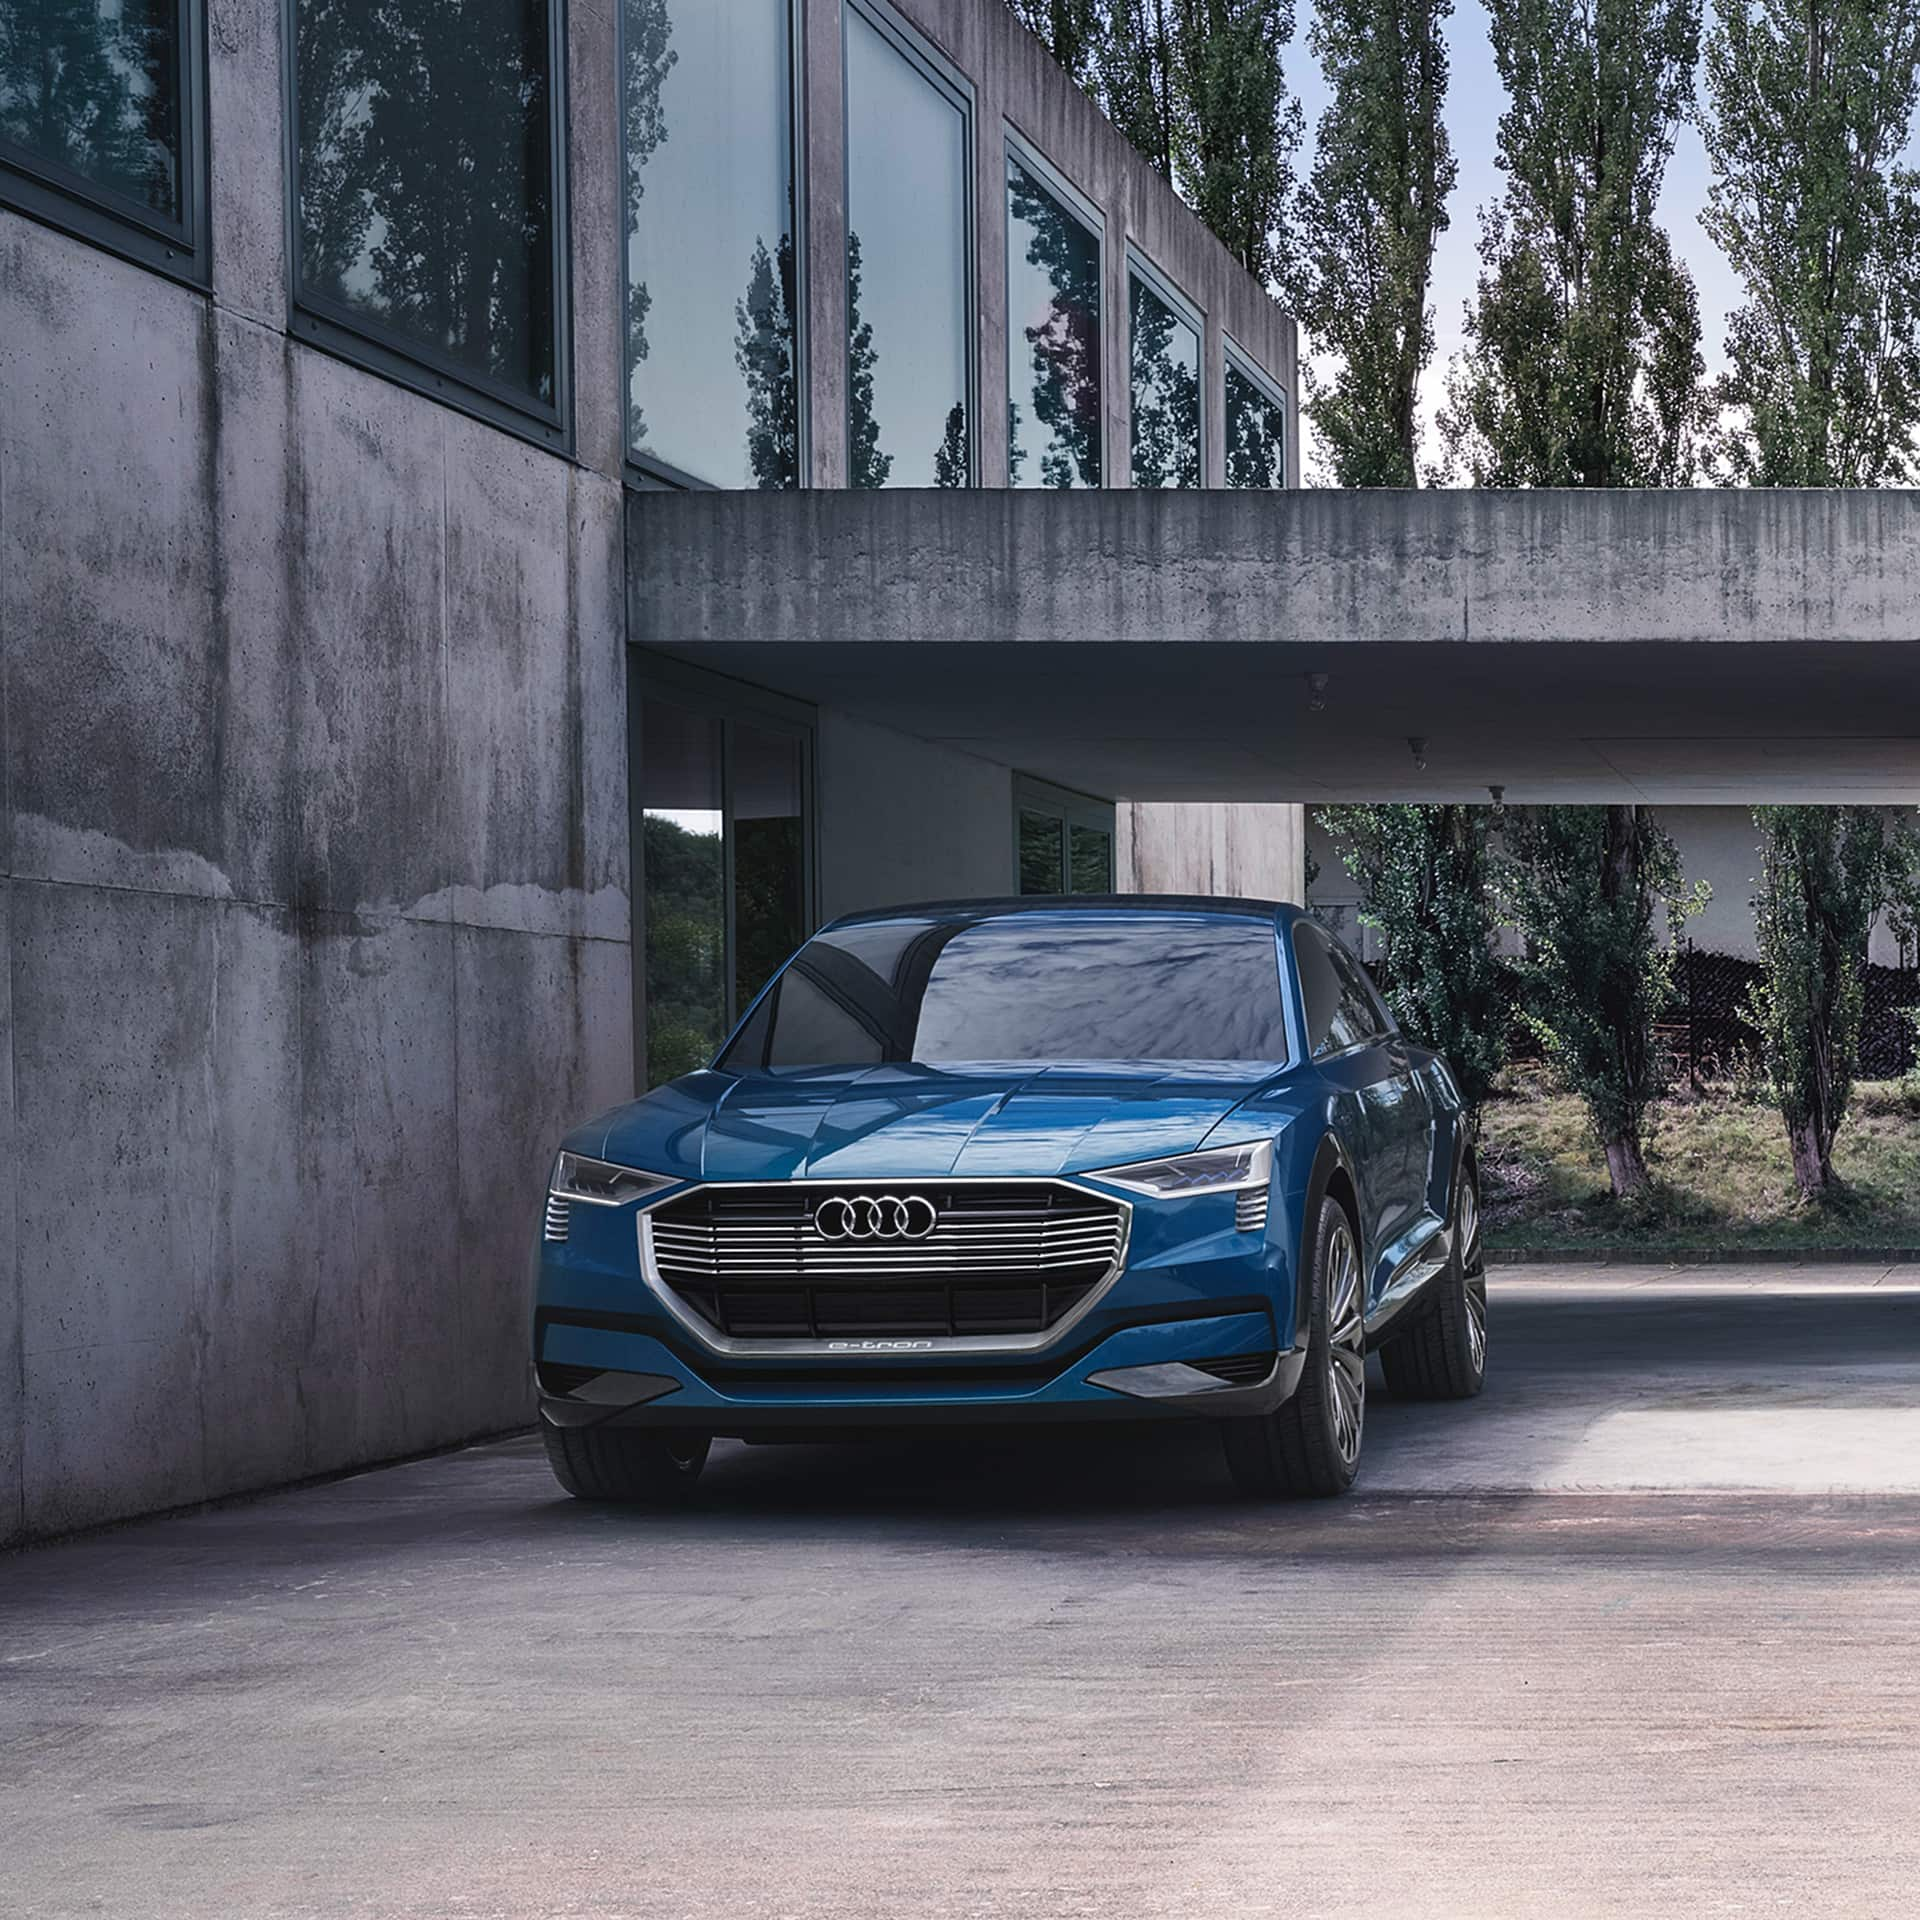 The Use Of Matrix Laser Oled Technology In Audi E Tron Quattro Concept Is A World First On Front Car And Represents Vorsprung Durch Technik